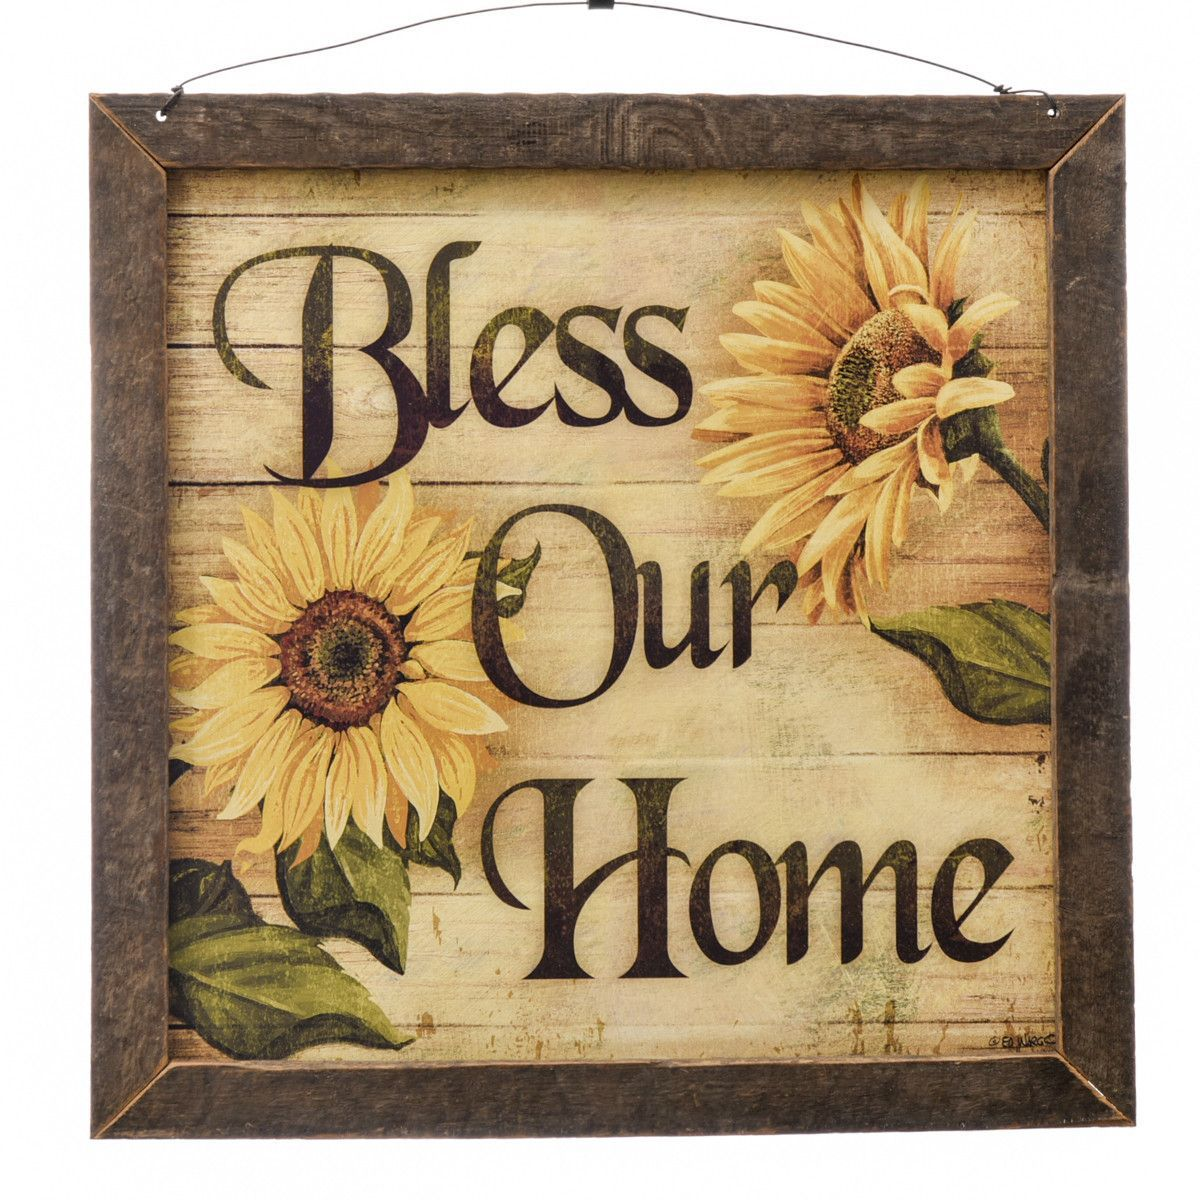 Bless our Home - Wood Prayer Plaque | Products